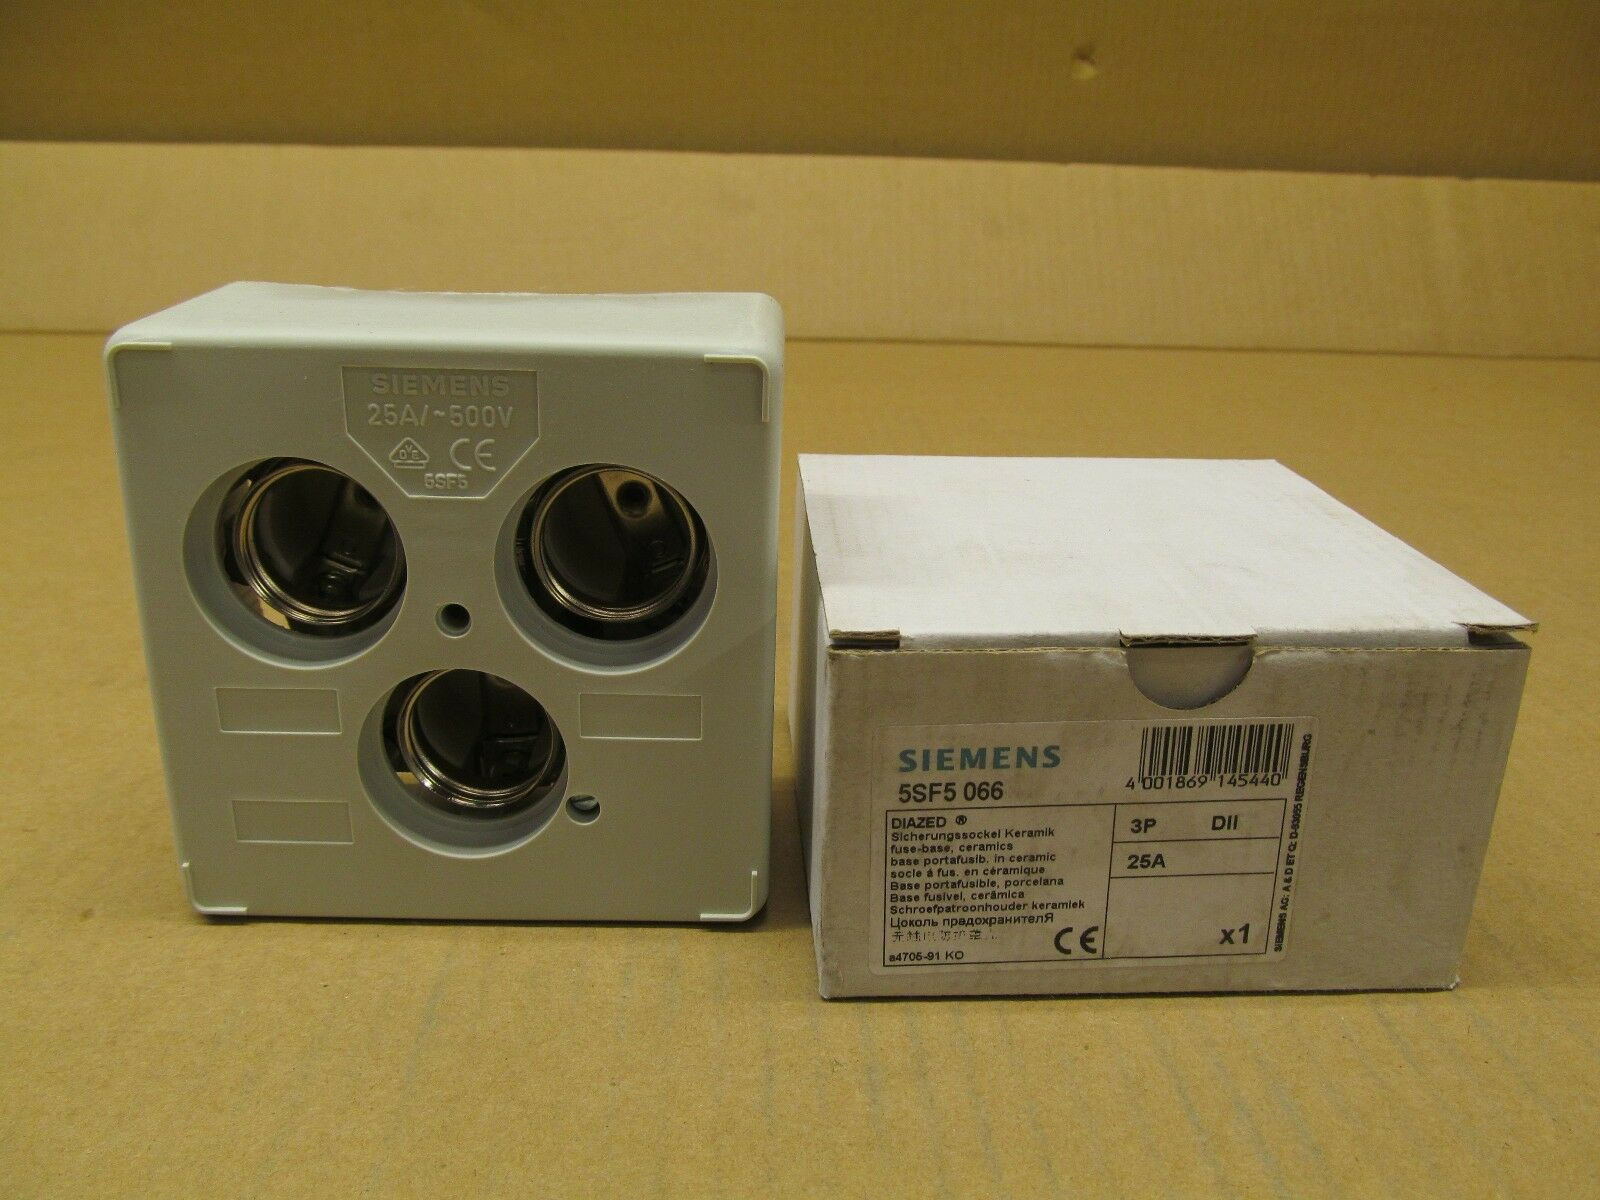 1 Siemens 5sf5 066 5sf5066 Diazed Fuse Base 3p Dii 25a 500v 25 Amp 3 Box Norton Secured Powered By Verisign